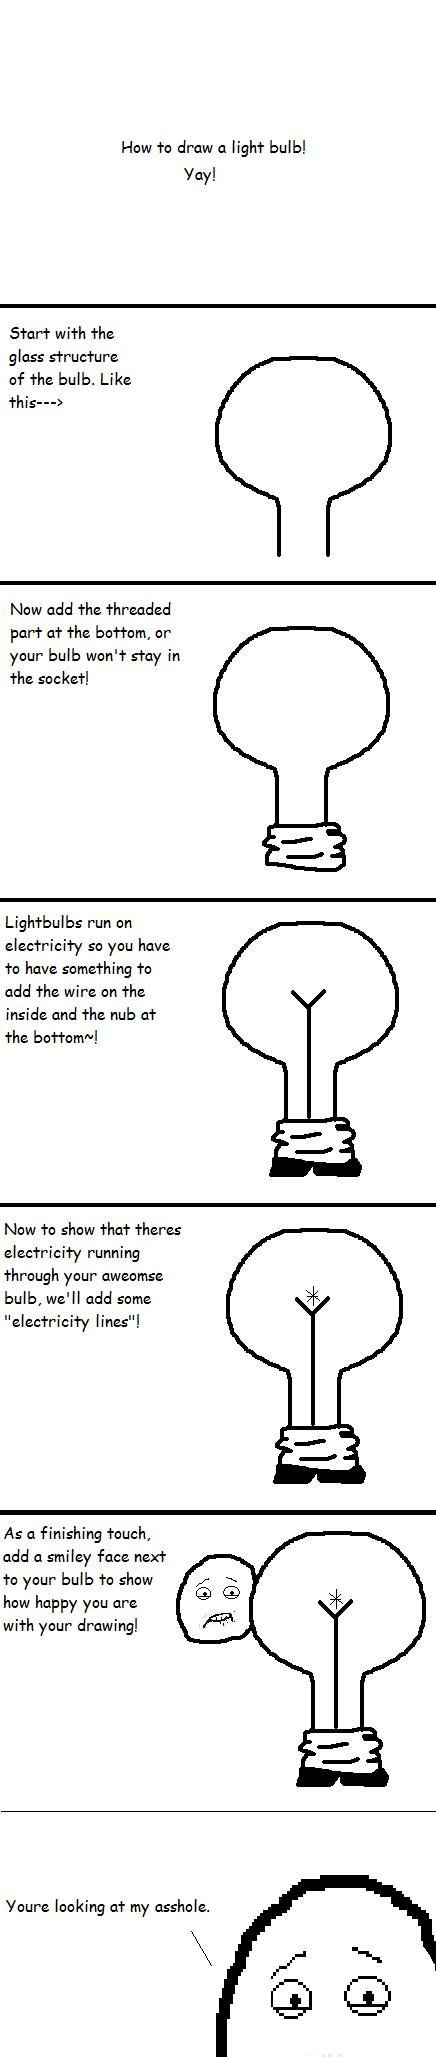 lightbulb0 - some funny pics i thought id share